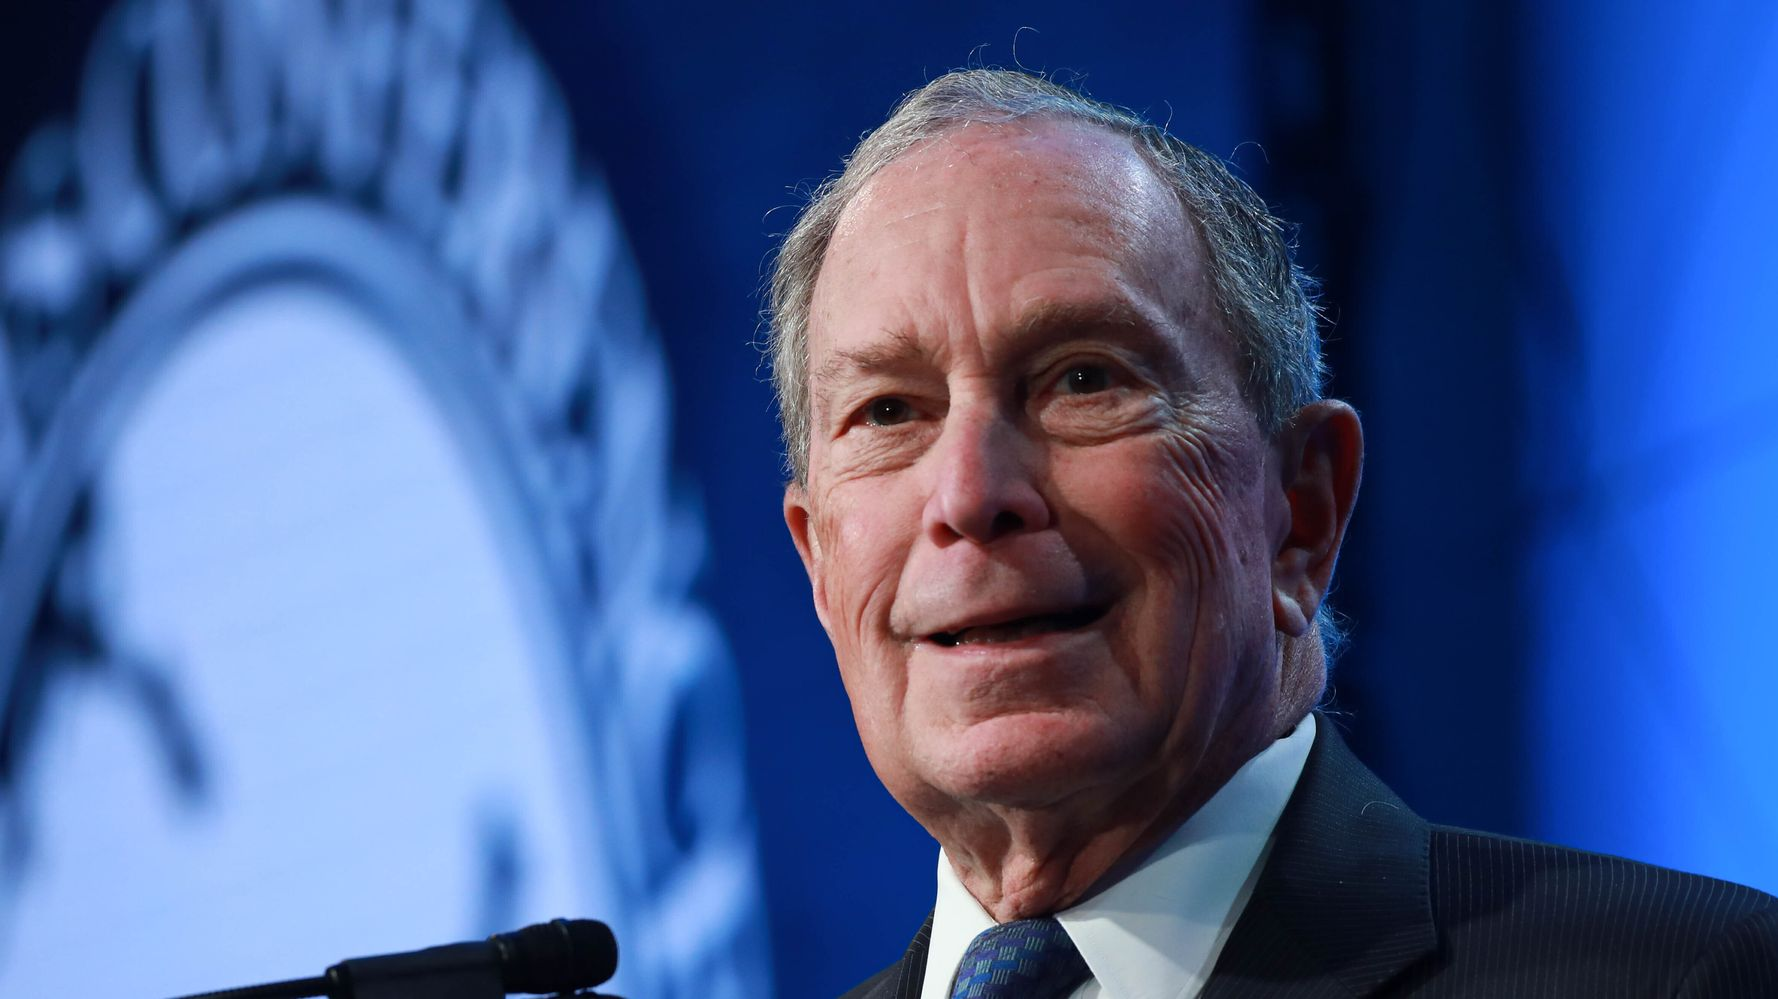 Bloomberg Wins Both Democratic And Republican Vote In America's Weirdest Primary